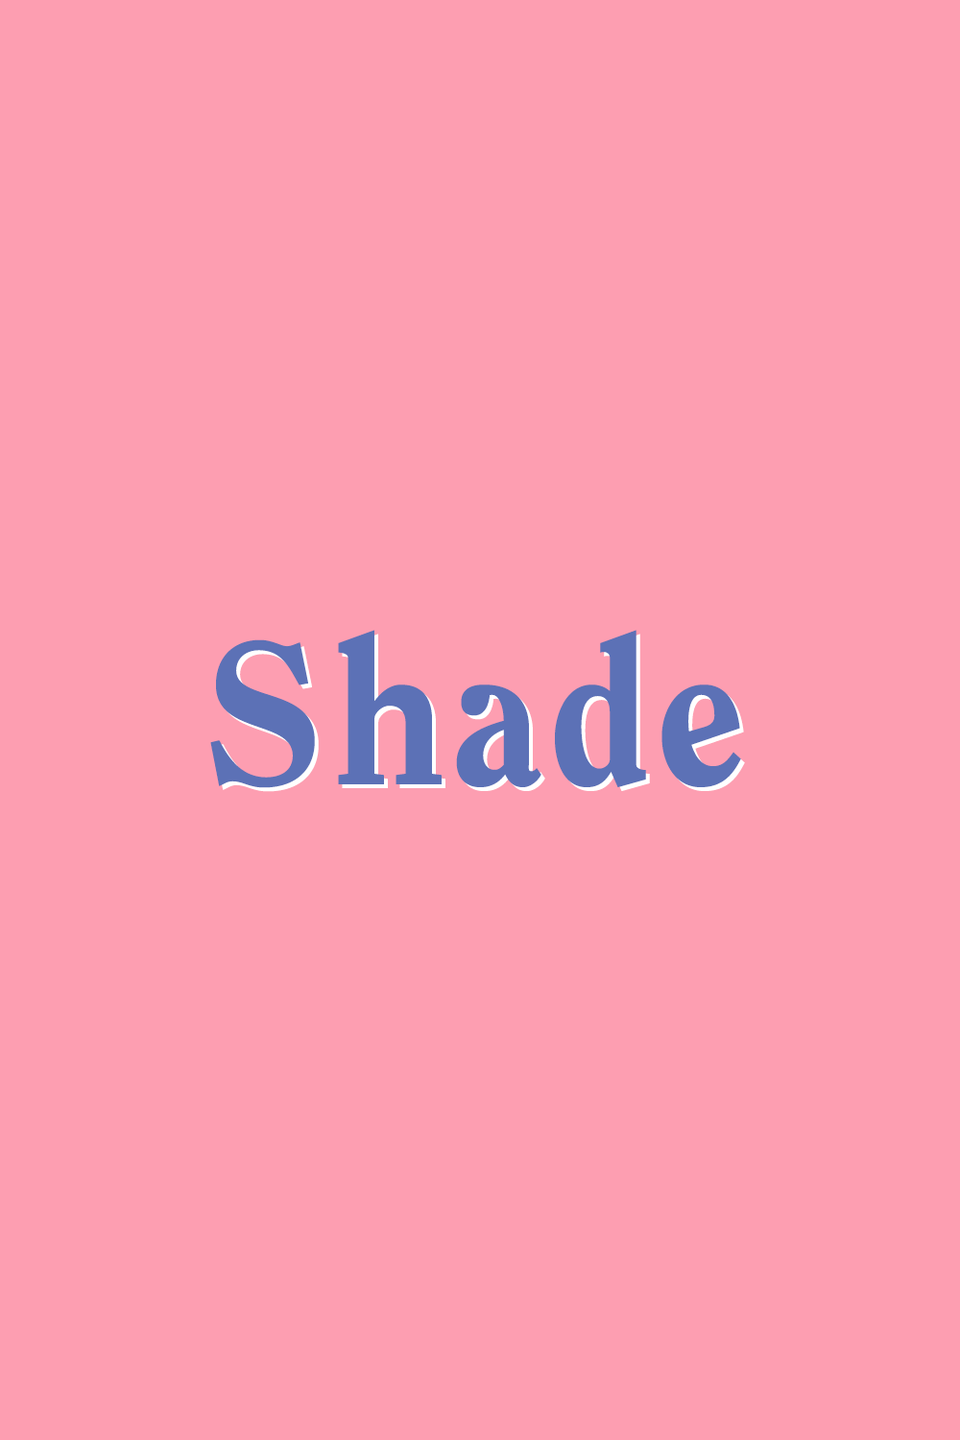 "<p>You can ""throw shade"" or ""be shady,"" in other words, subtly (or indirectly) disrespect someone. Stemming from <a href=""https://www.oprahdaily.com/life/a23601818/queer-cultural-appropriation-definition/"" rel=""nofollow noopener"" target=""_blank"" data-ylk=""slk:queer culture"" class=""link rapid-noclick-resp"">queer culture</a>, again, <em><a href=""https://www.amazon.com/Paris-Burning-Jennie-Livingston/dp/B007QJ89VU?tag=syn-yahoo-20&ascsubtag=%5Bartid%7C10063.g.36061267%5Bsrc%7Cyahoo-us"" rel=""nofollow noopener"" target=""_blank"" data-ylk=""slk:Paris Is Burning"" class=""link rapid-noclick-resp"">Paris Is Burning</a> </em>captures the art of it. In the film, drag performer Dorian Corey puts it this way: ""Shade is, I don't have to tell you you're ugly, but I don't have to tell you because you <em>know</em> you're ugly."" Shade. </p>"